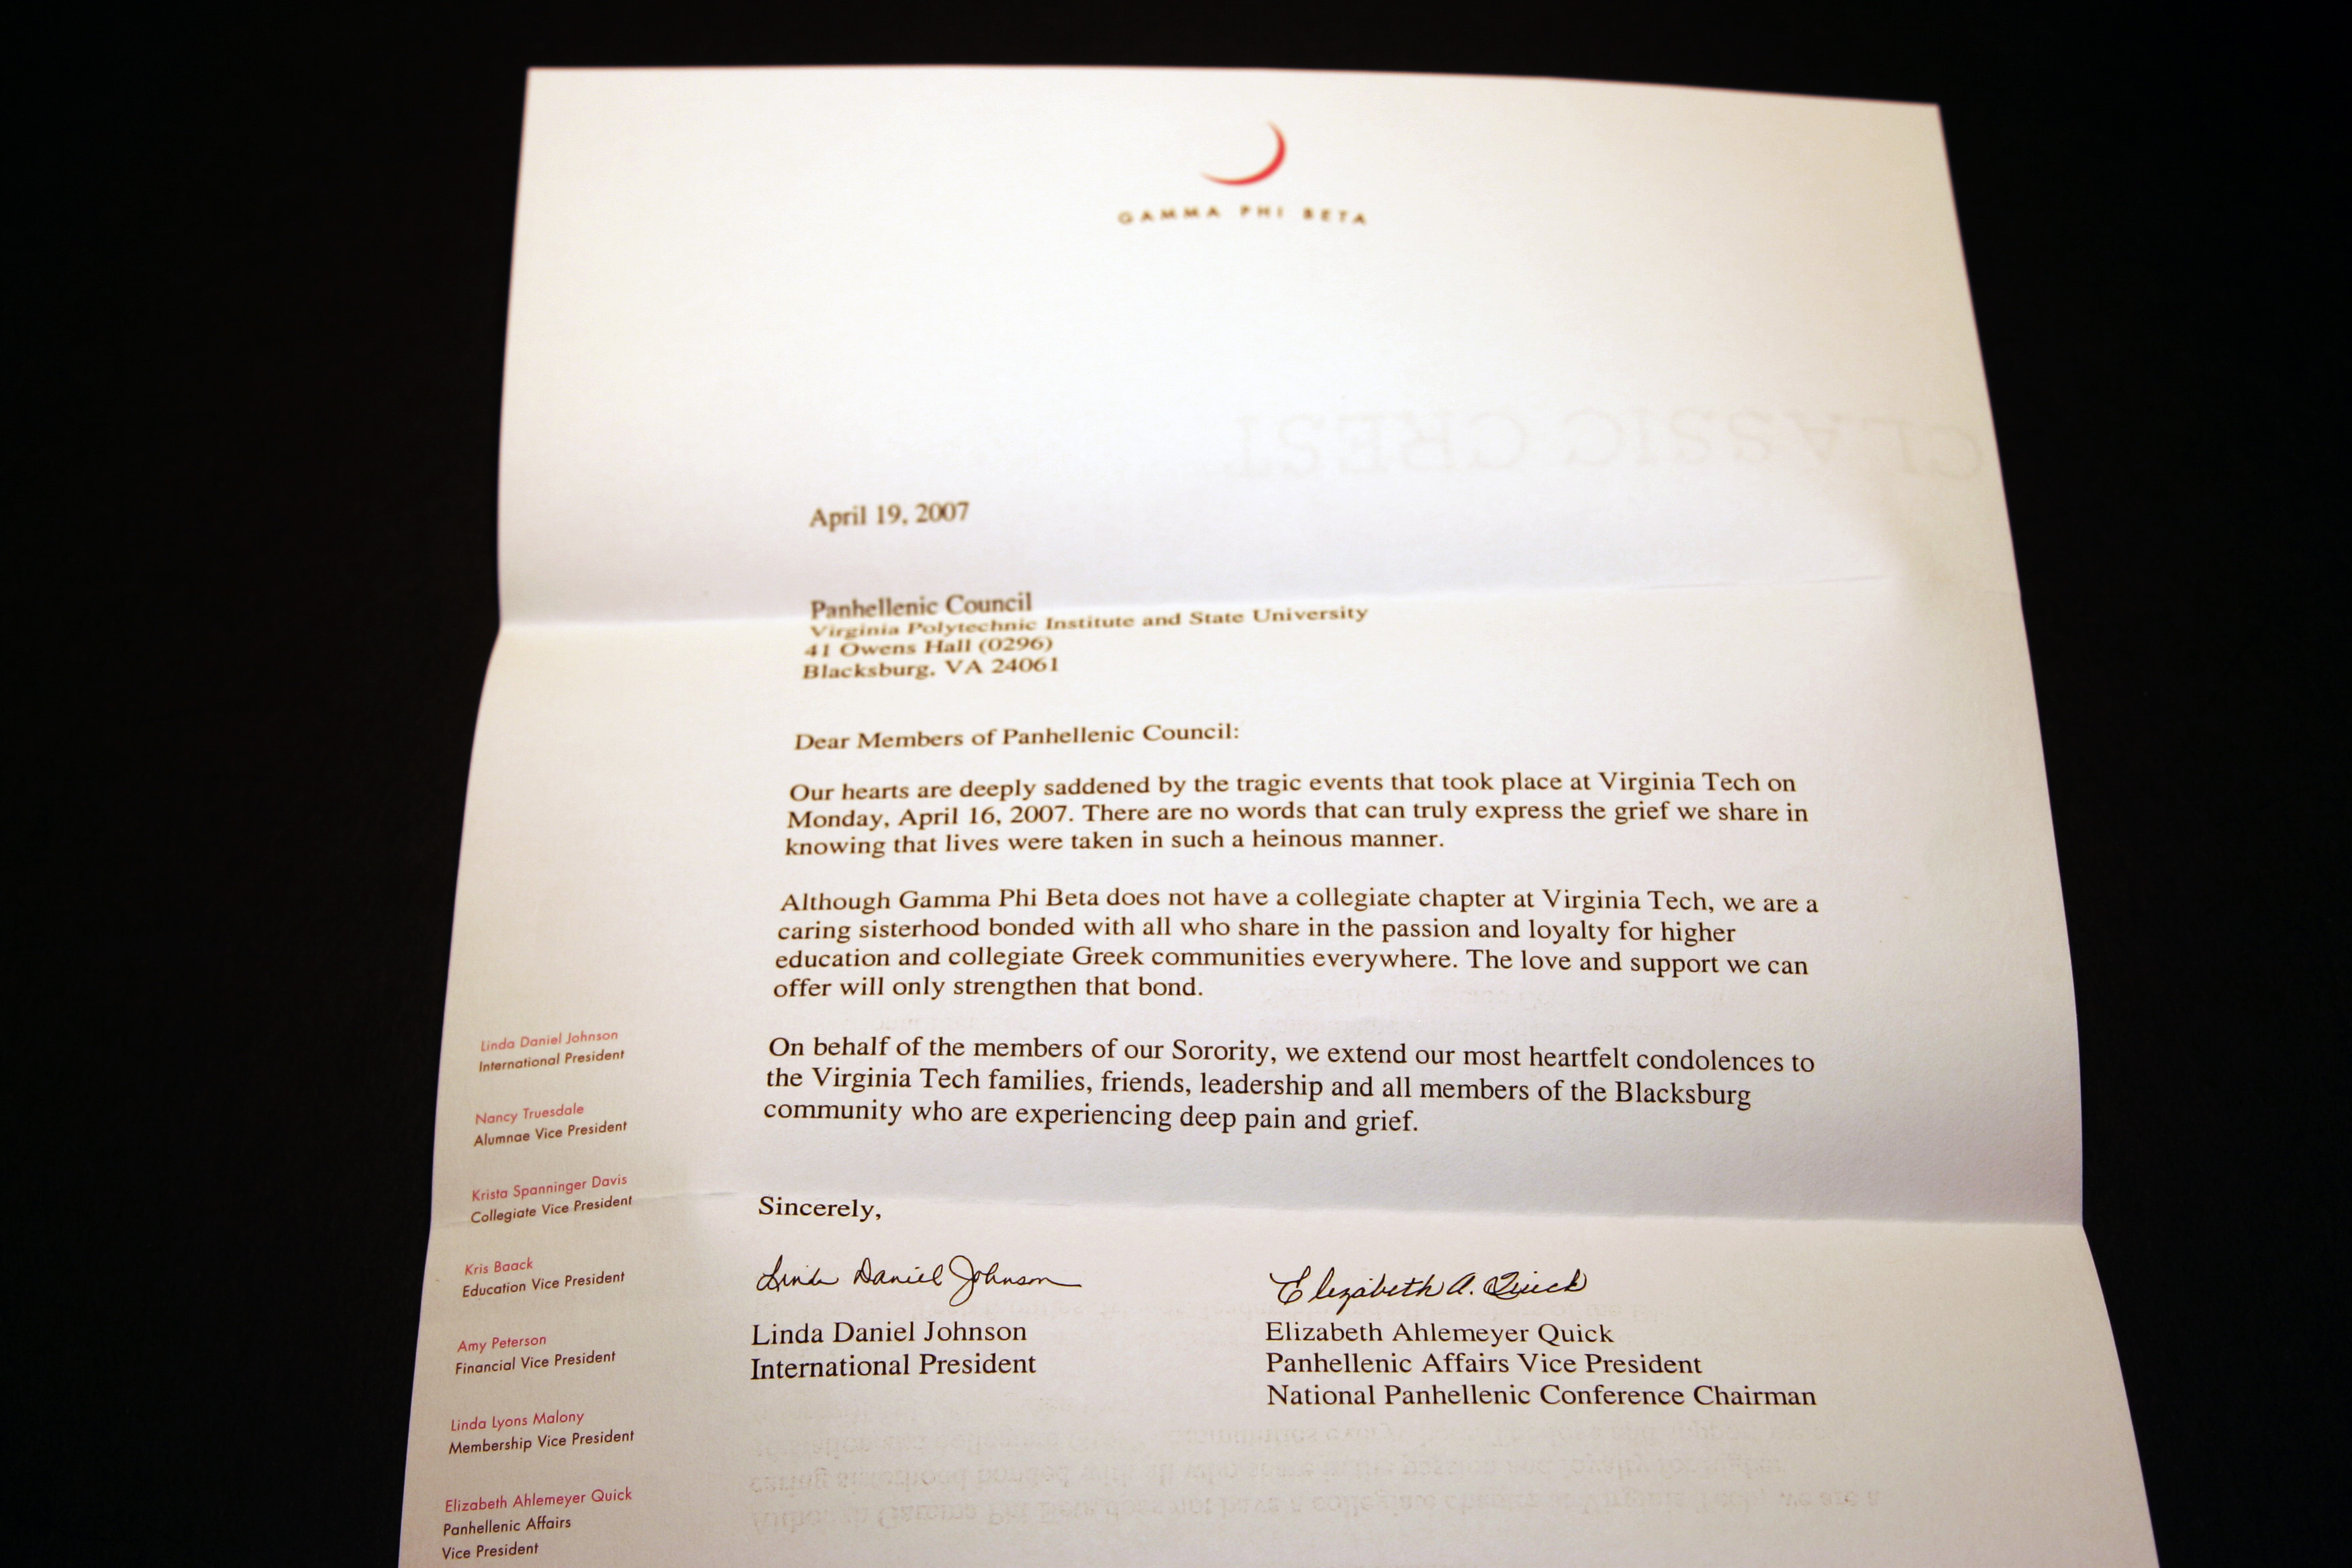 Letter from Gamma Phi Beta